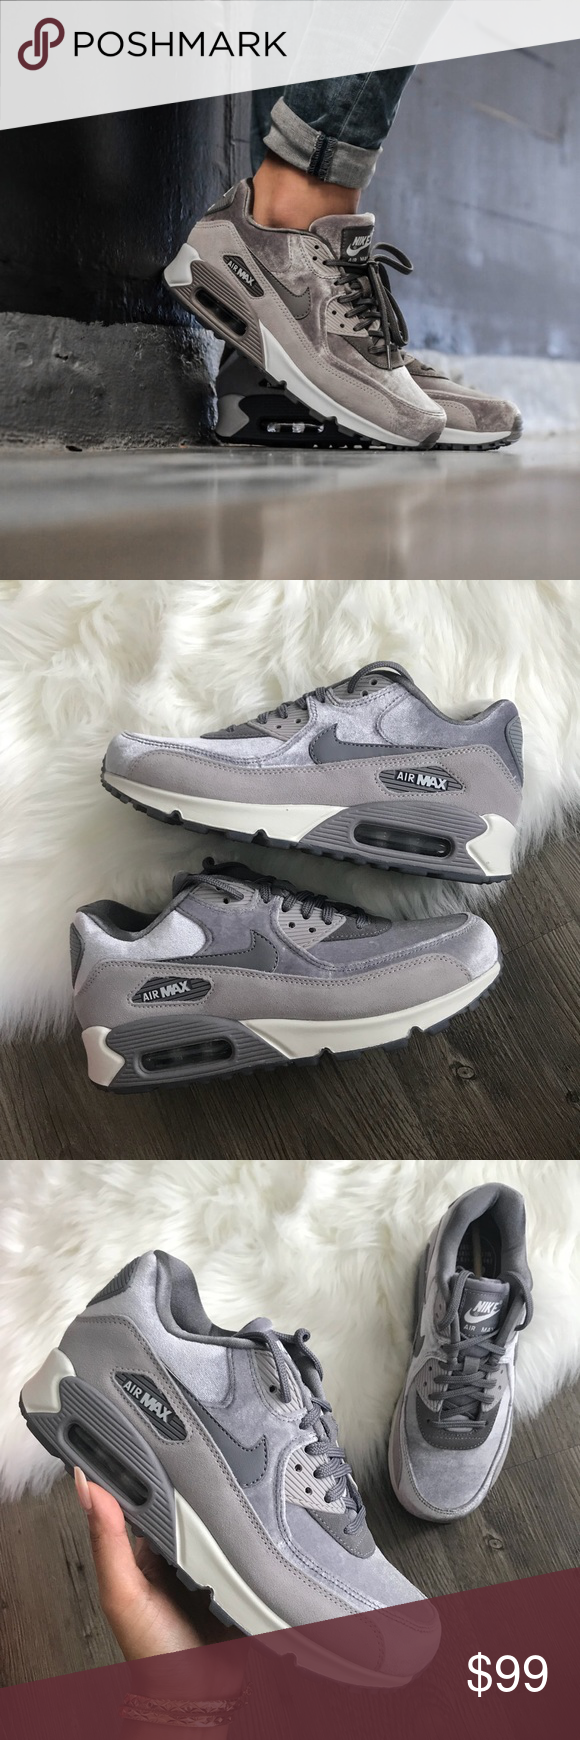 Women's Nike Air Max 90 LX size 6.5 Particle Rose